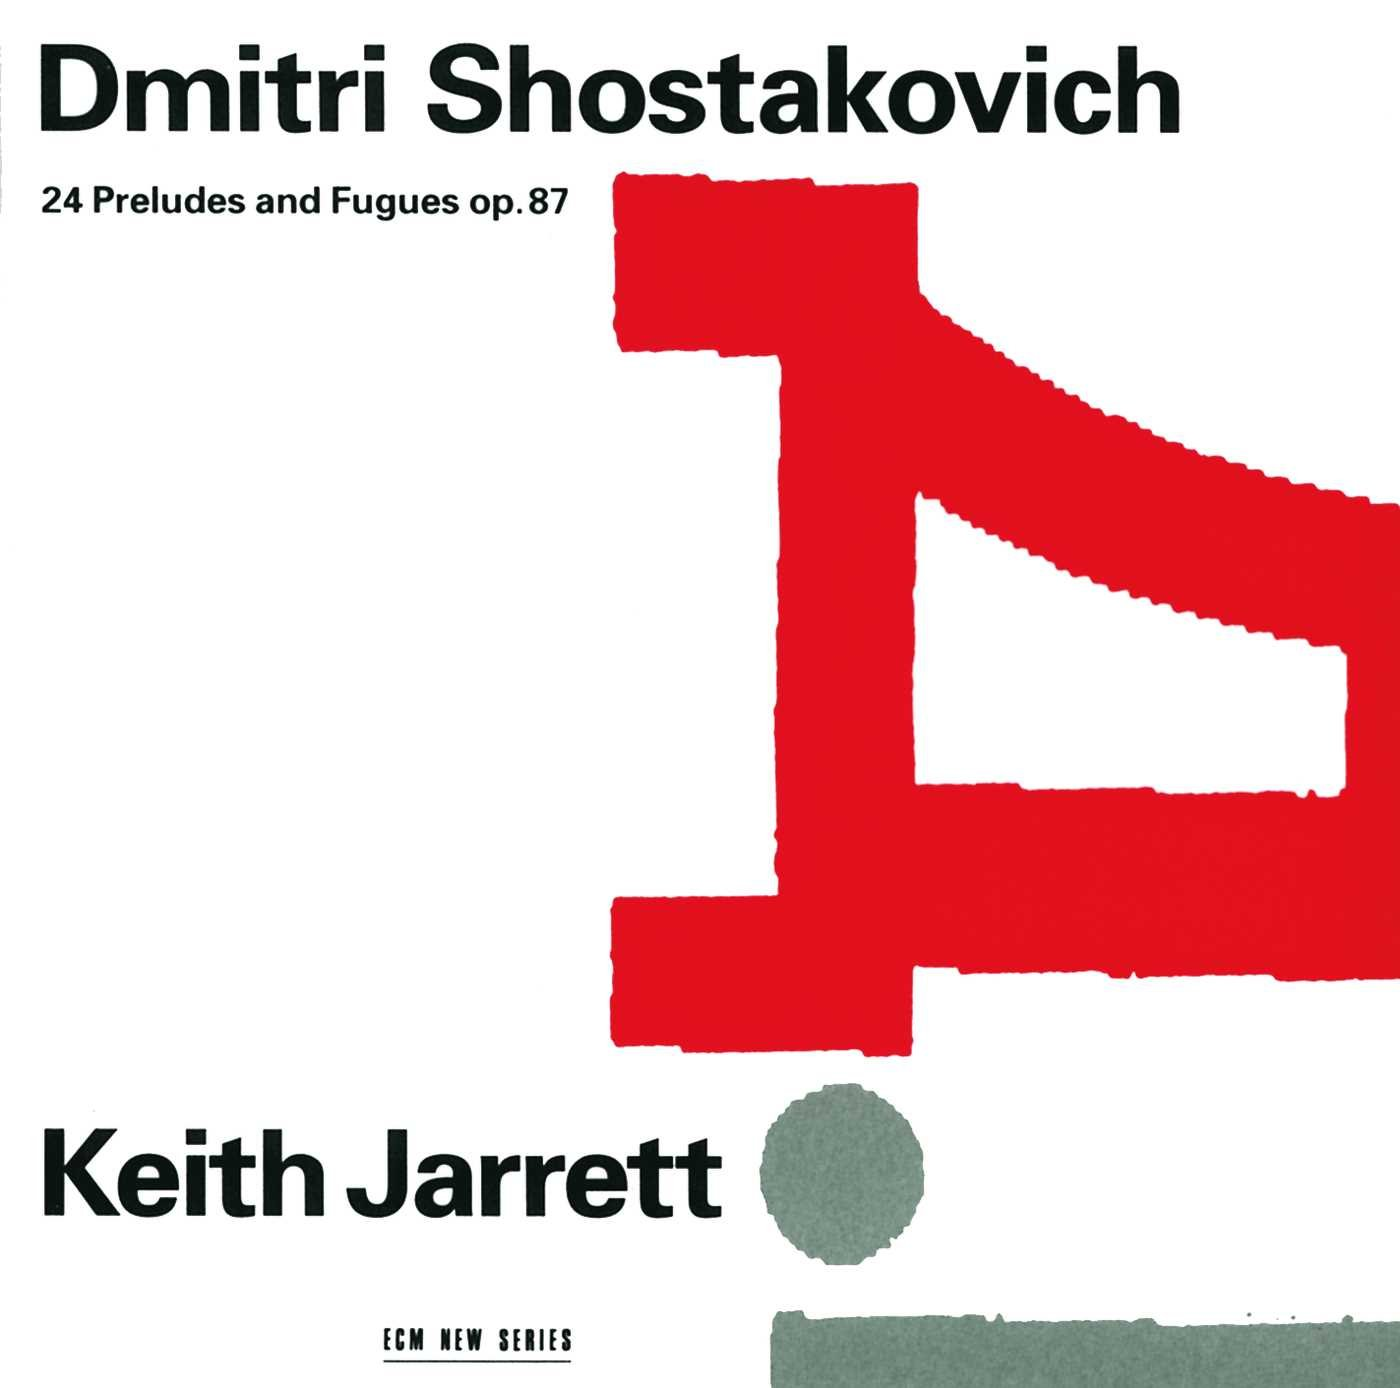 Dmitri Shostakovich: 24 Preludes & Fugues, op. 87 by ECM RECORDS